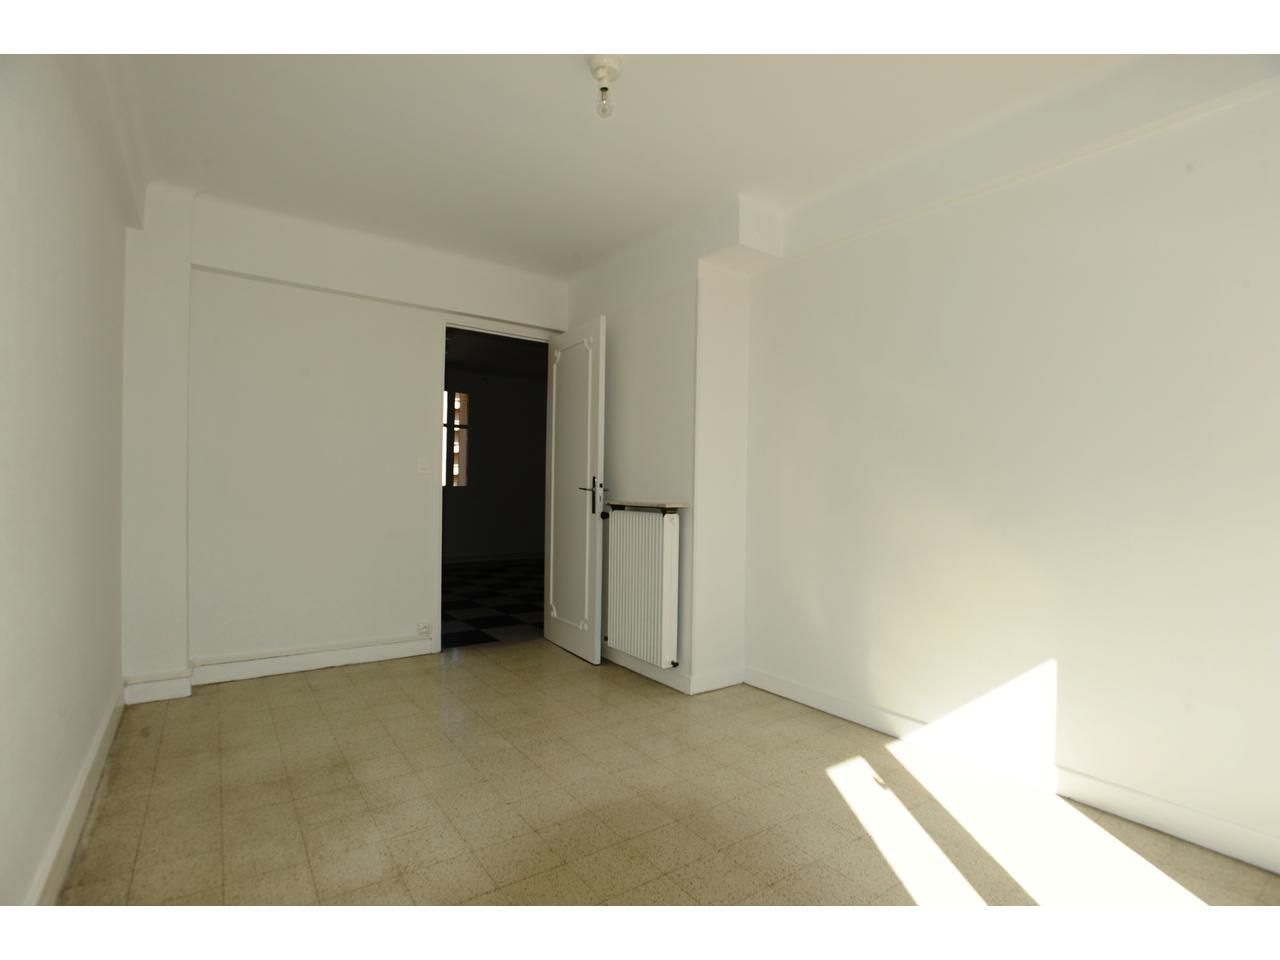 Immobilier appartement nice a louer bas madeleine agreable for Chambre a louer nice